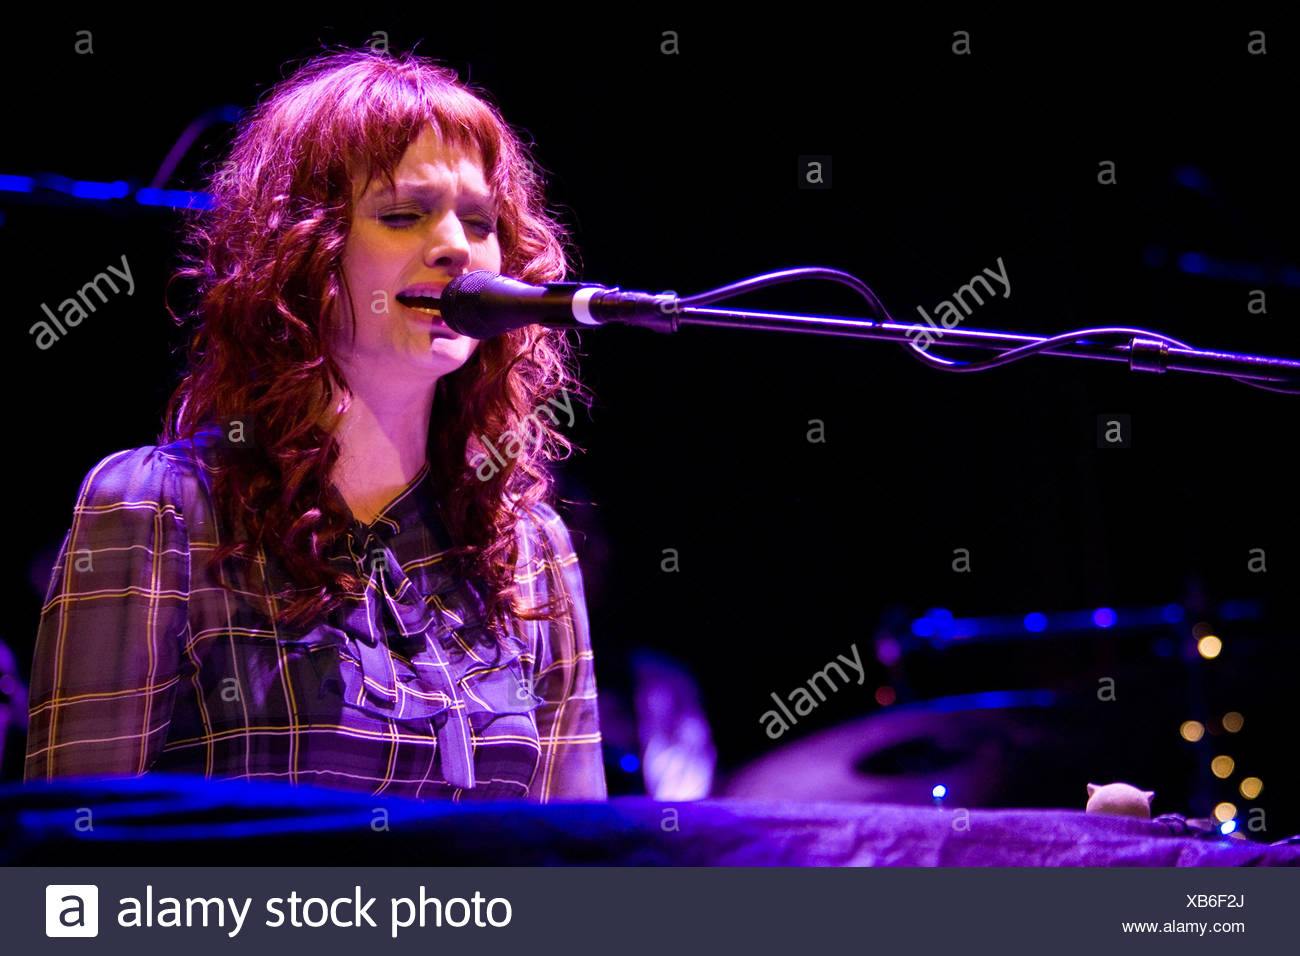 US-American singer and pianist A Fine Frenzy performing live at Kaufleuten club in Zurich, Switzerland - Stock Image